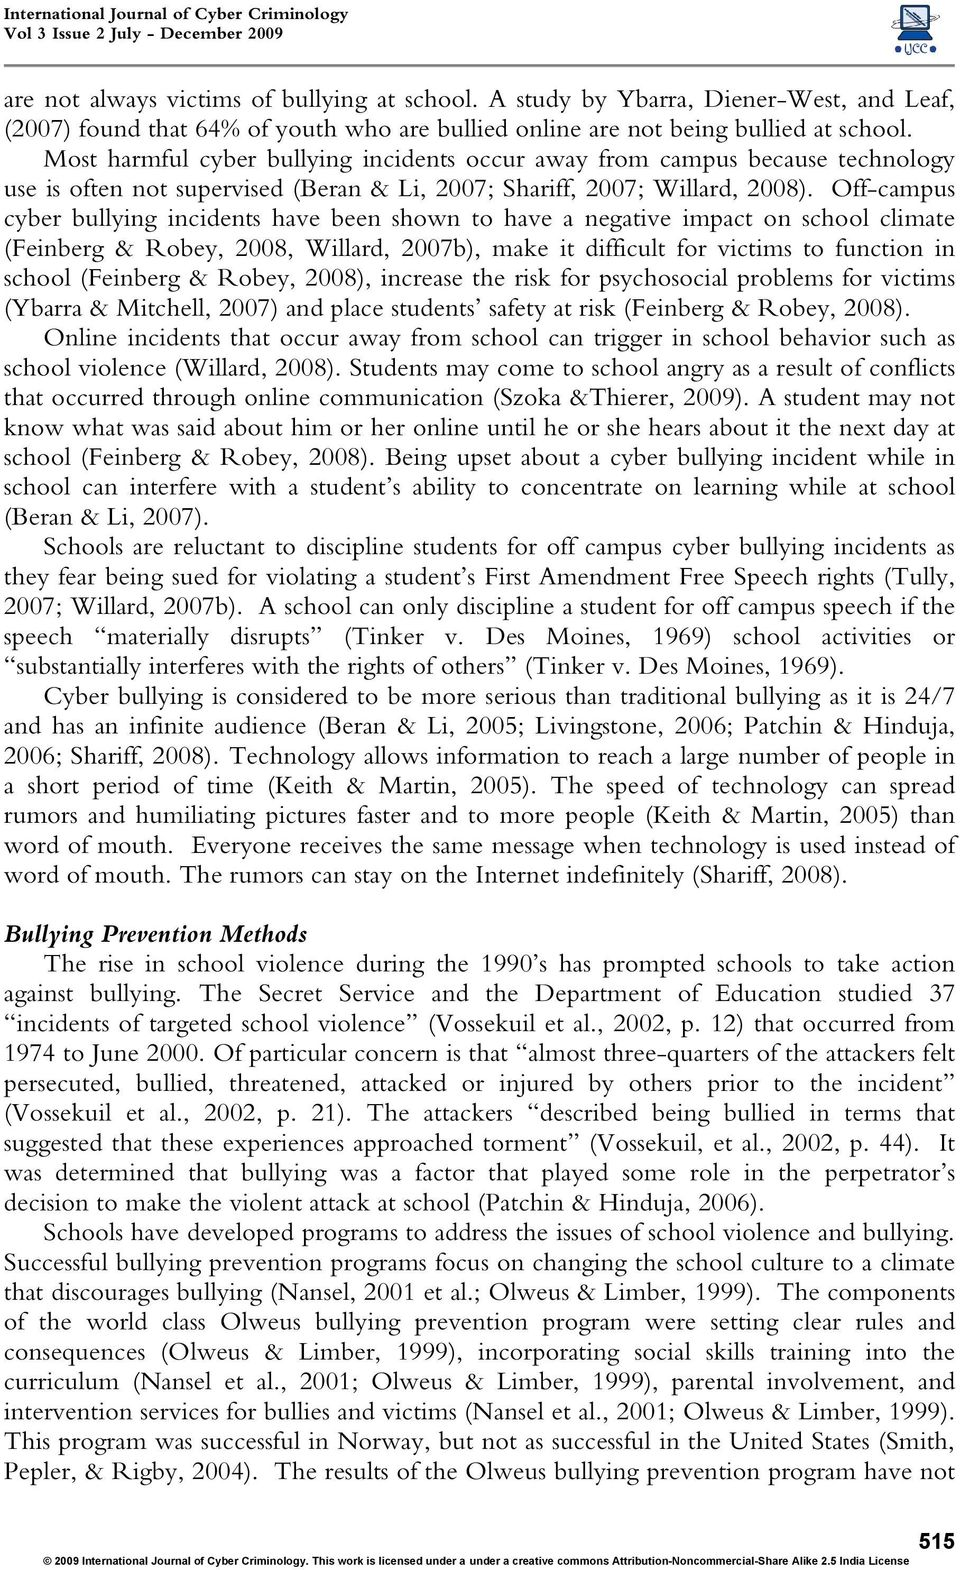 Off-campus cyber bullying incidents have been shown to have a negative impact on school climate (Feinberg & Robey, 2008, Willard, 2007b), make it difficult for victims to function in school (Feinberg